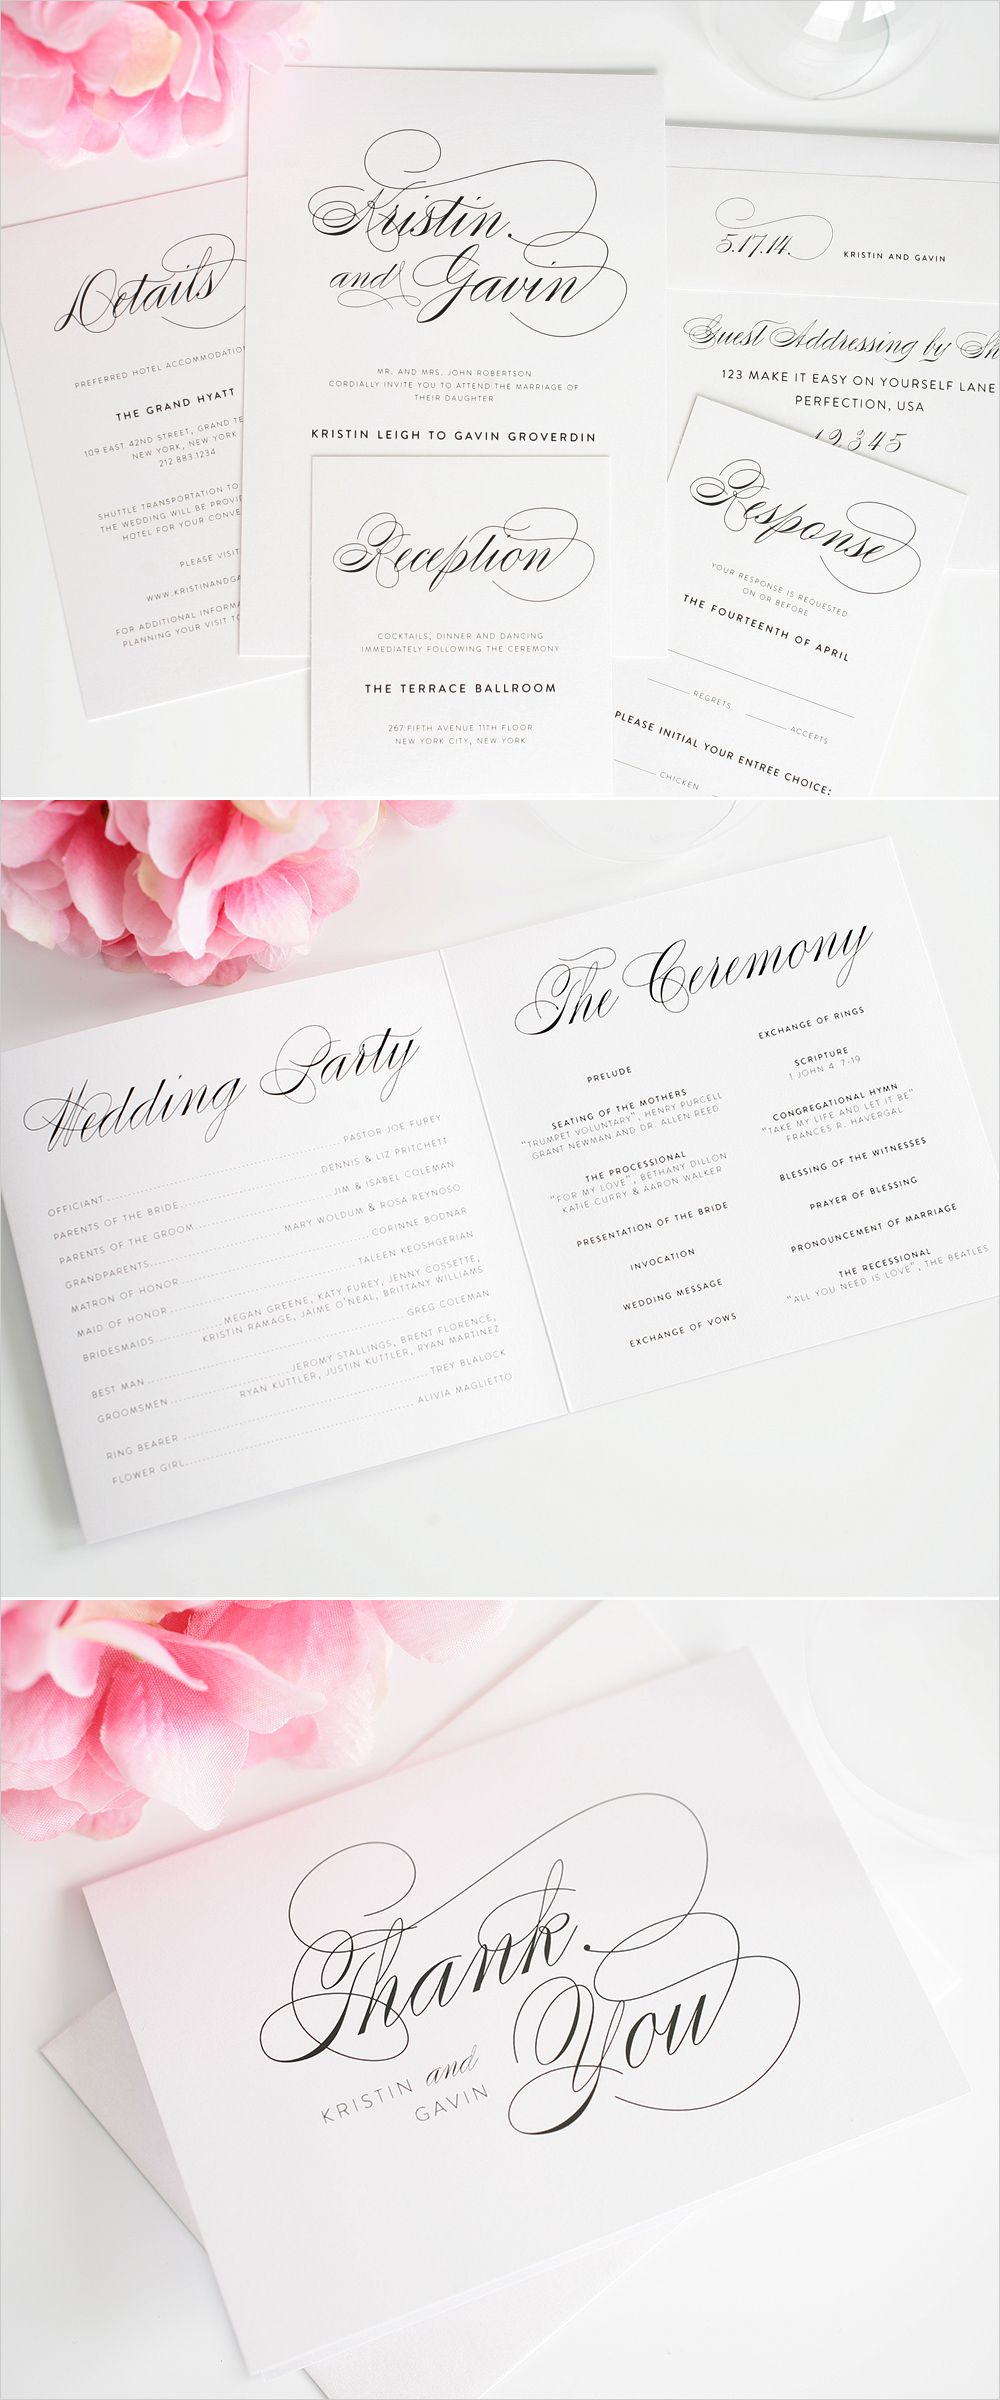 Script Elegance Wedding Invitations | Wedding, Wedding and Stationary